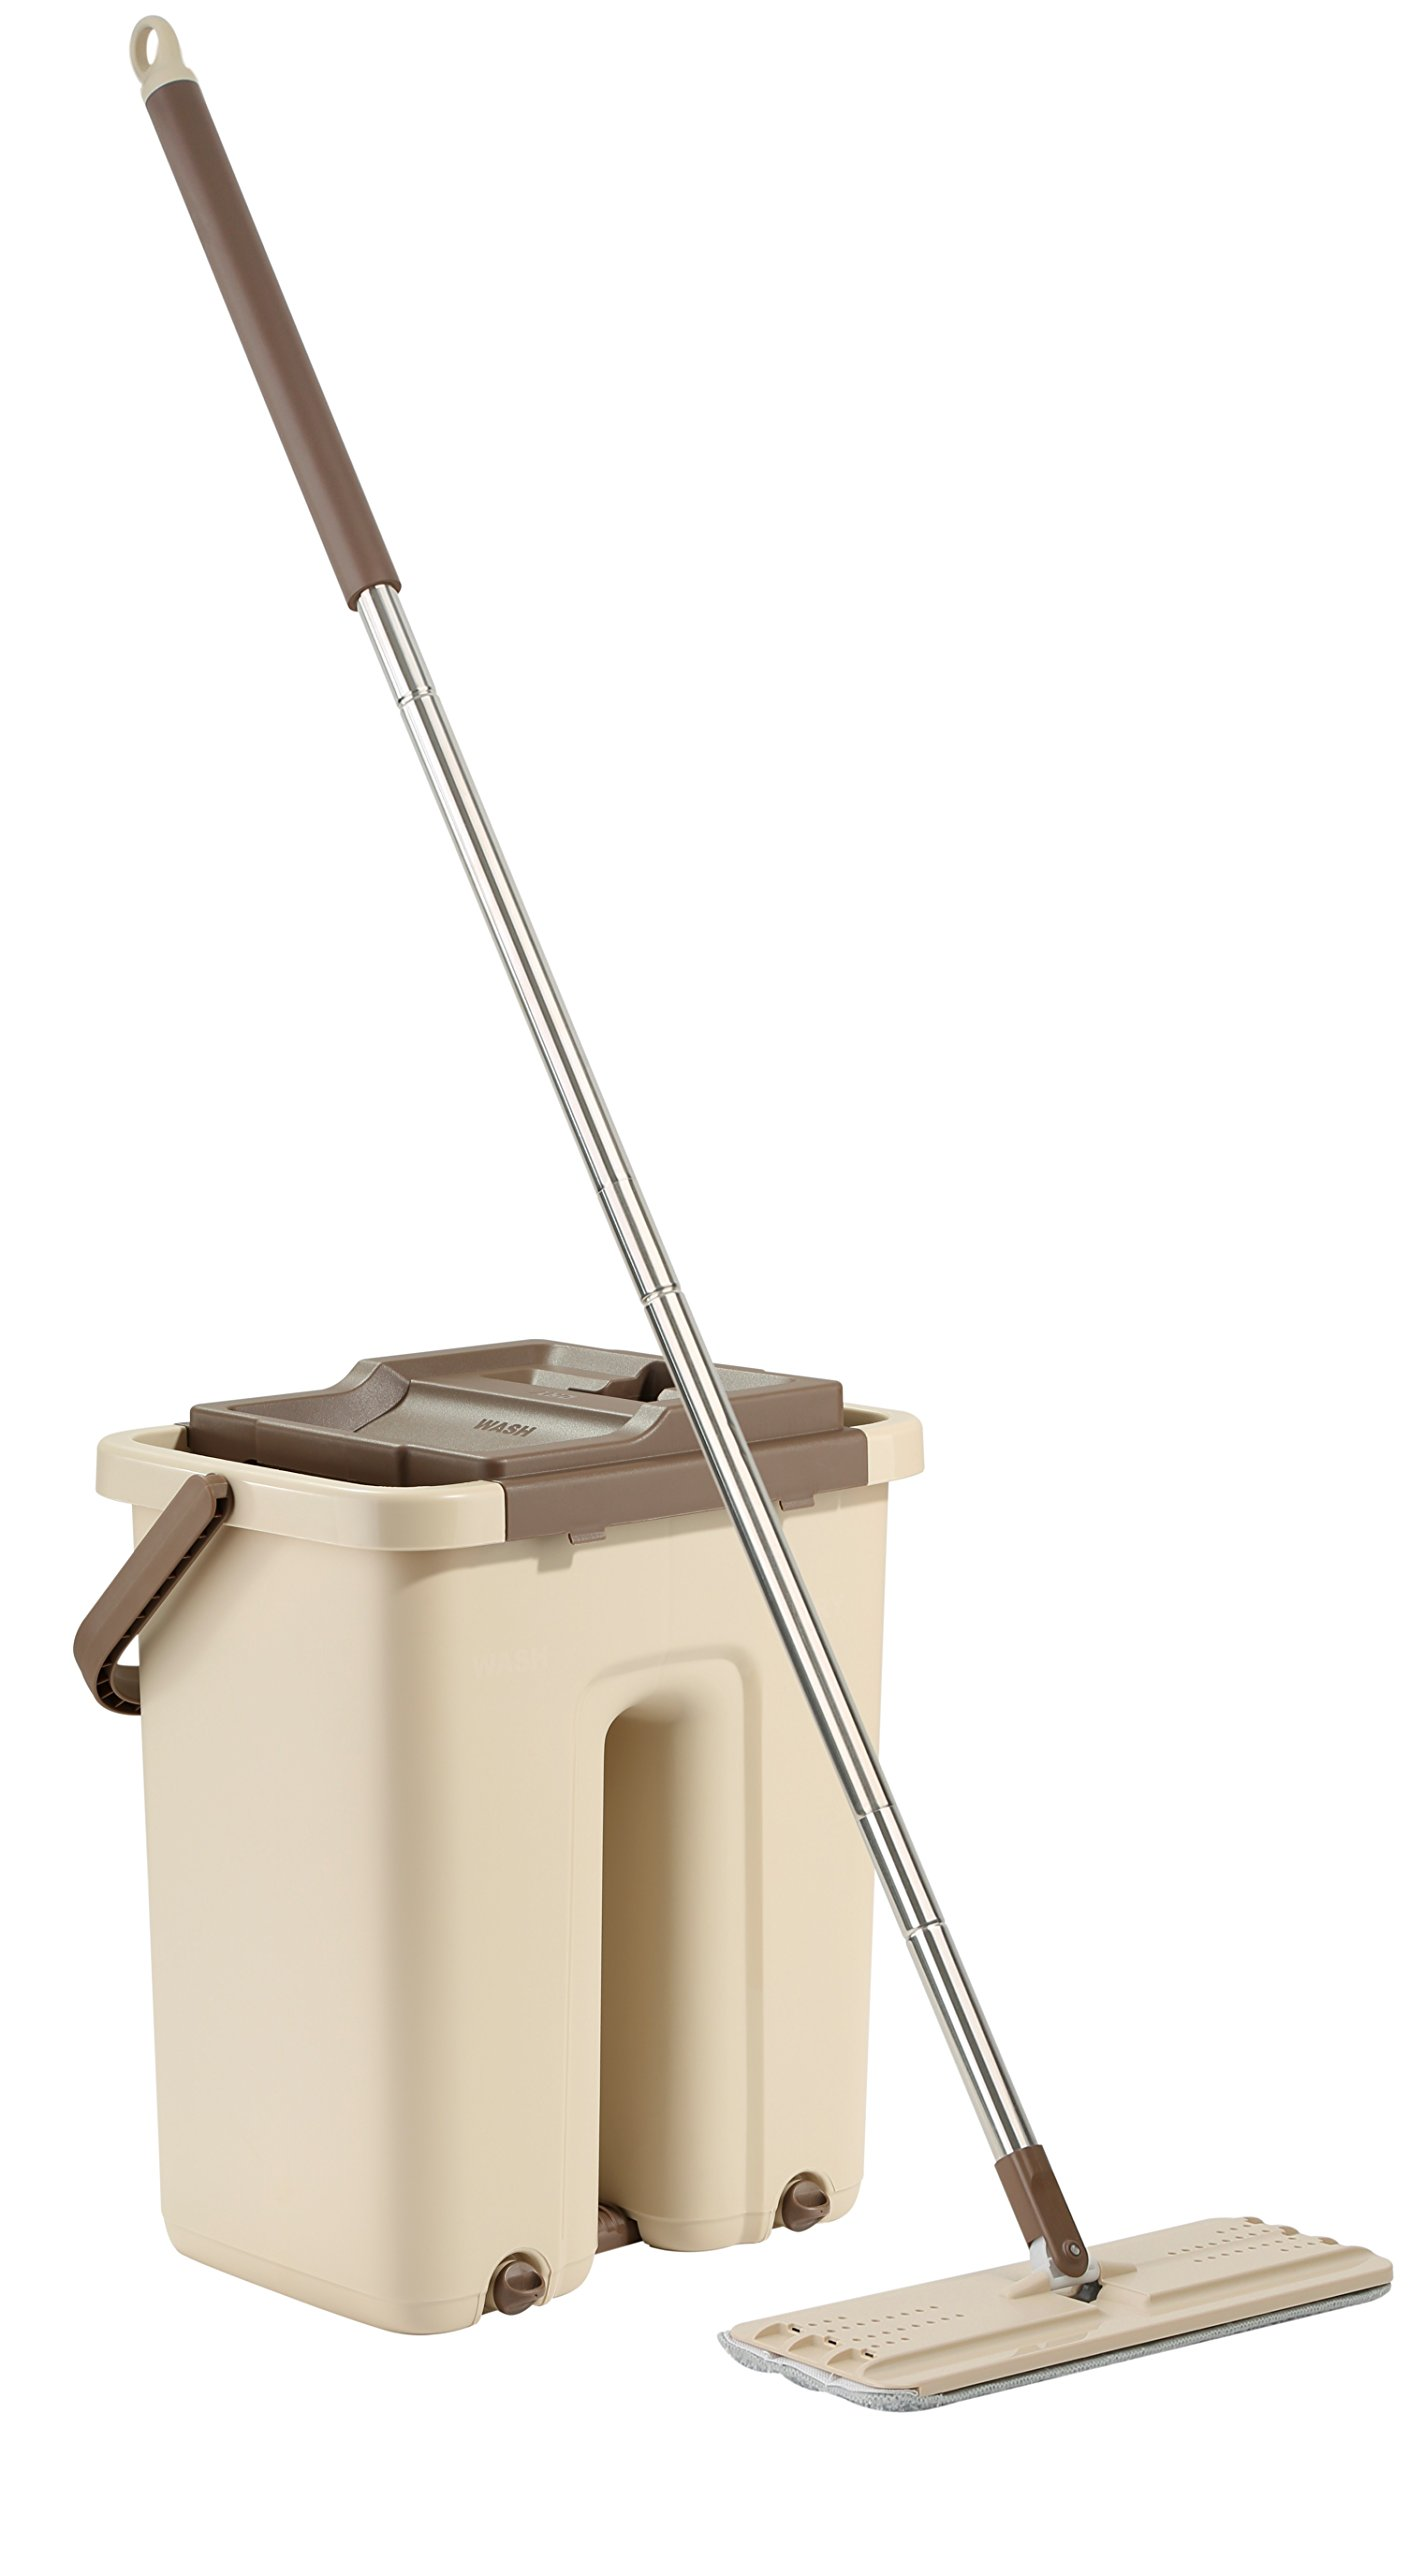 Husky Mounts World's Only Self Rinsing/Self Drying Mop & Bucket System Easily Gets Tile & Wood Floors Sparkling Clean. Patented Ergonomic Easy on Back. Flexible Mop Goes Into Tight Places